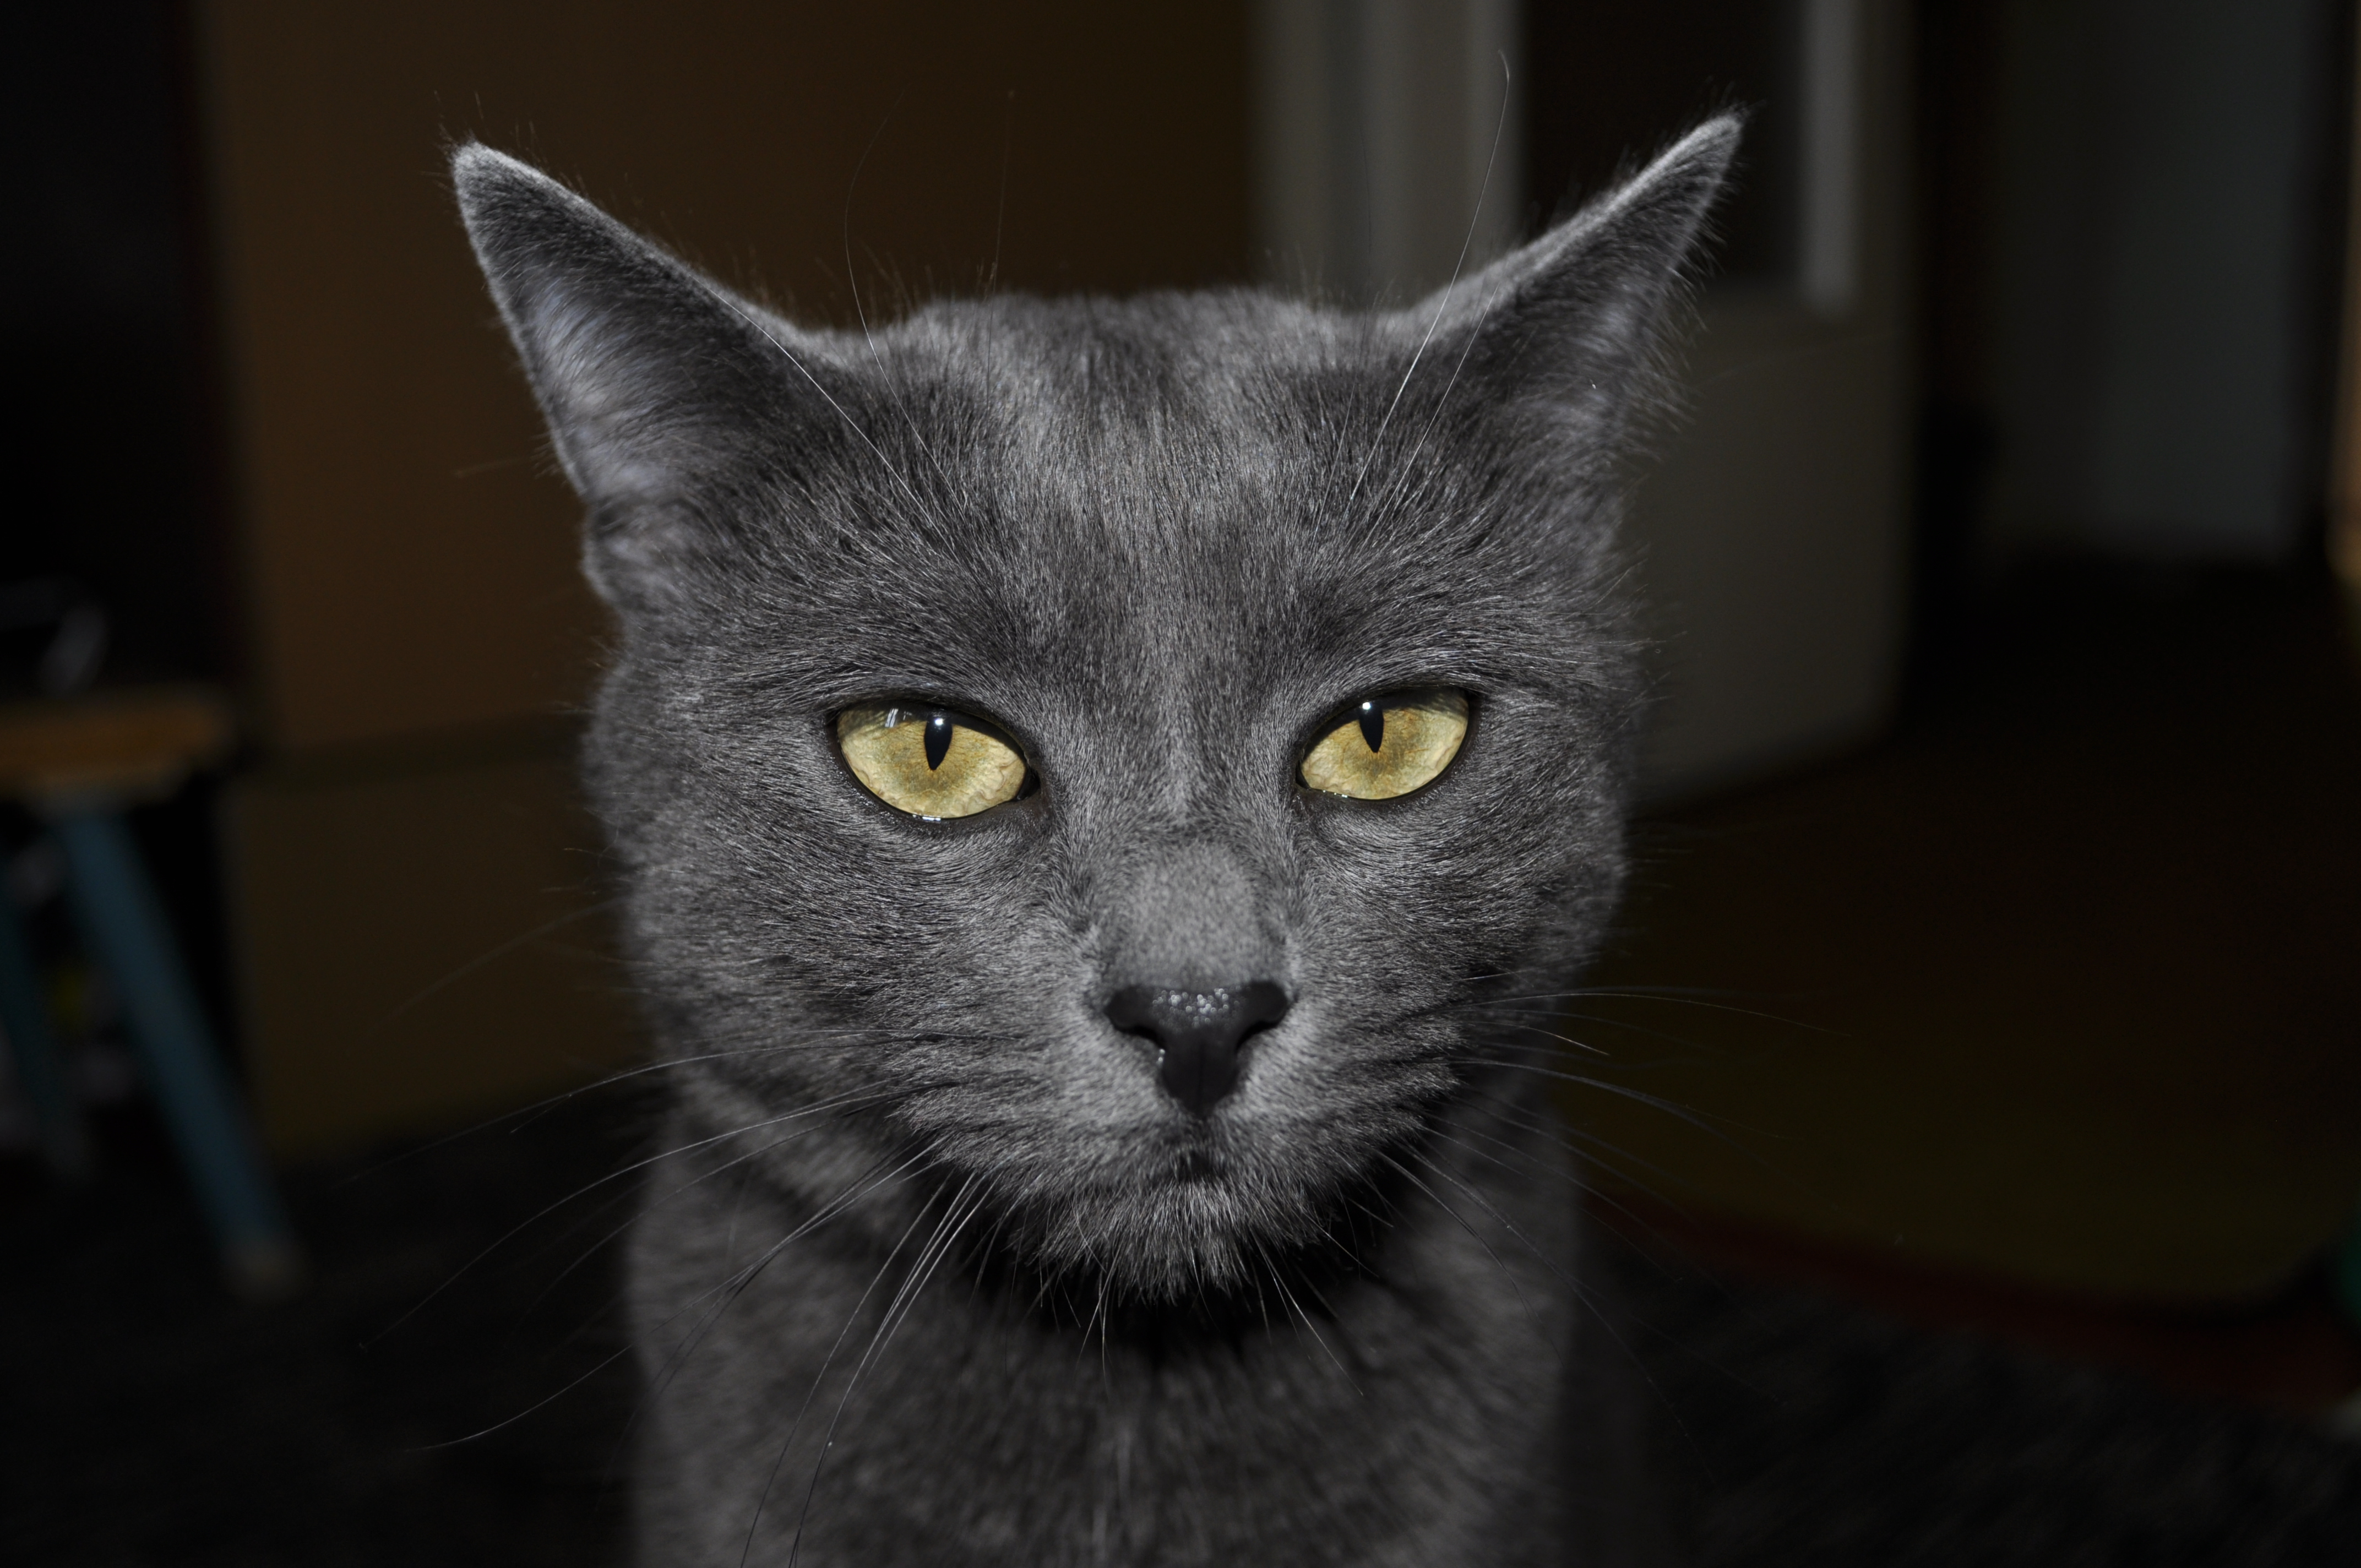 The gray Cat, Cat, Fur, Gray, Head, HQ Photo